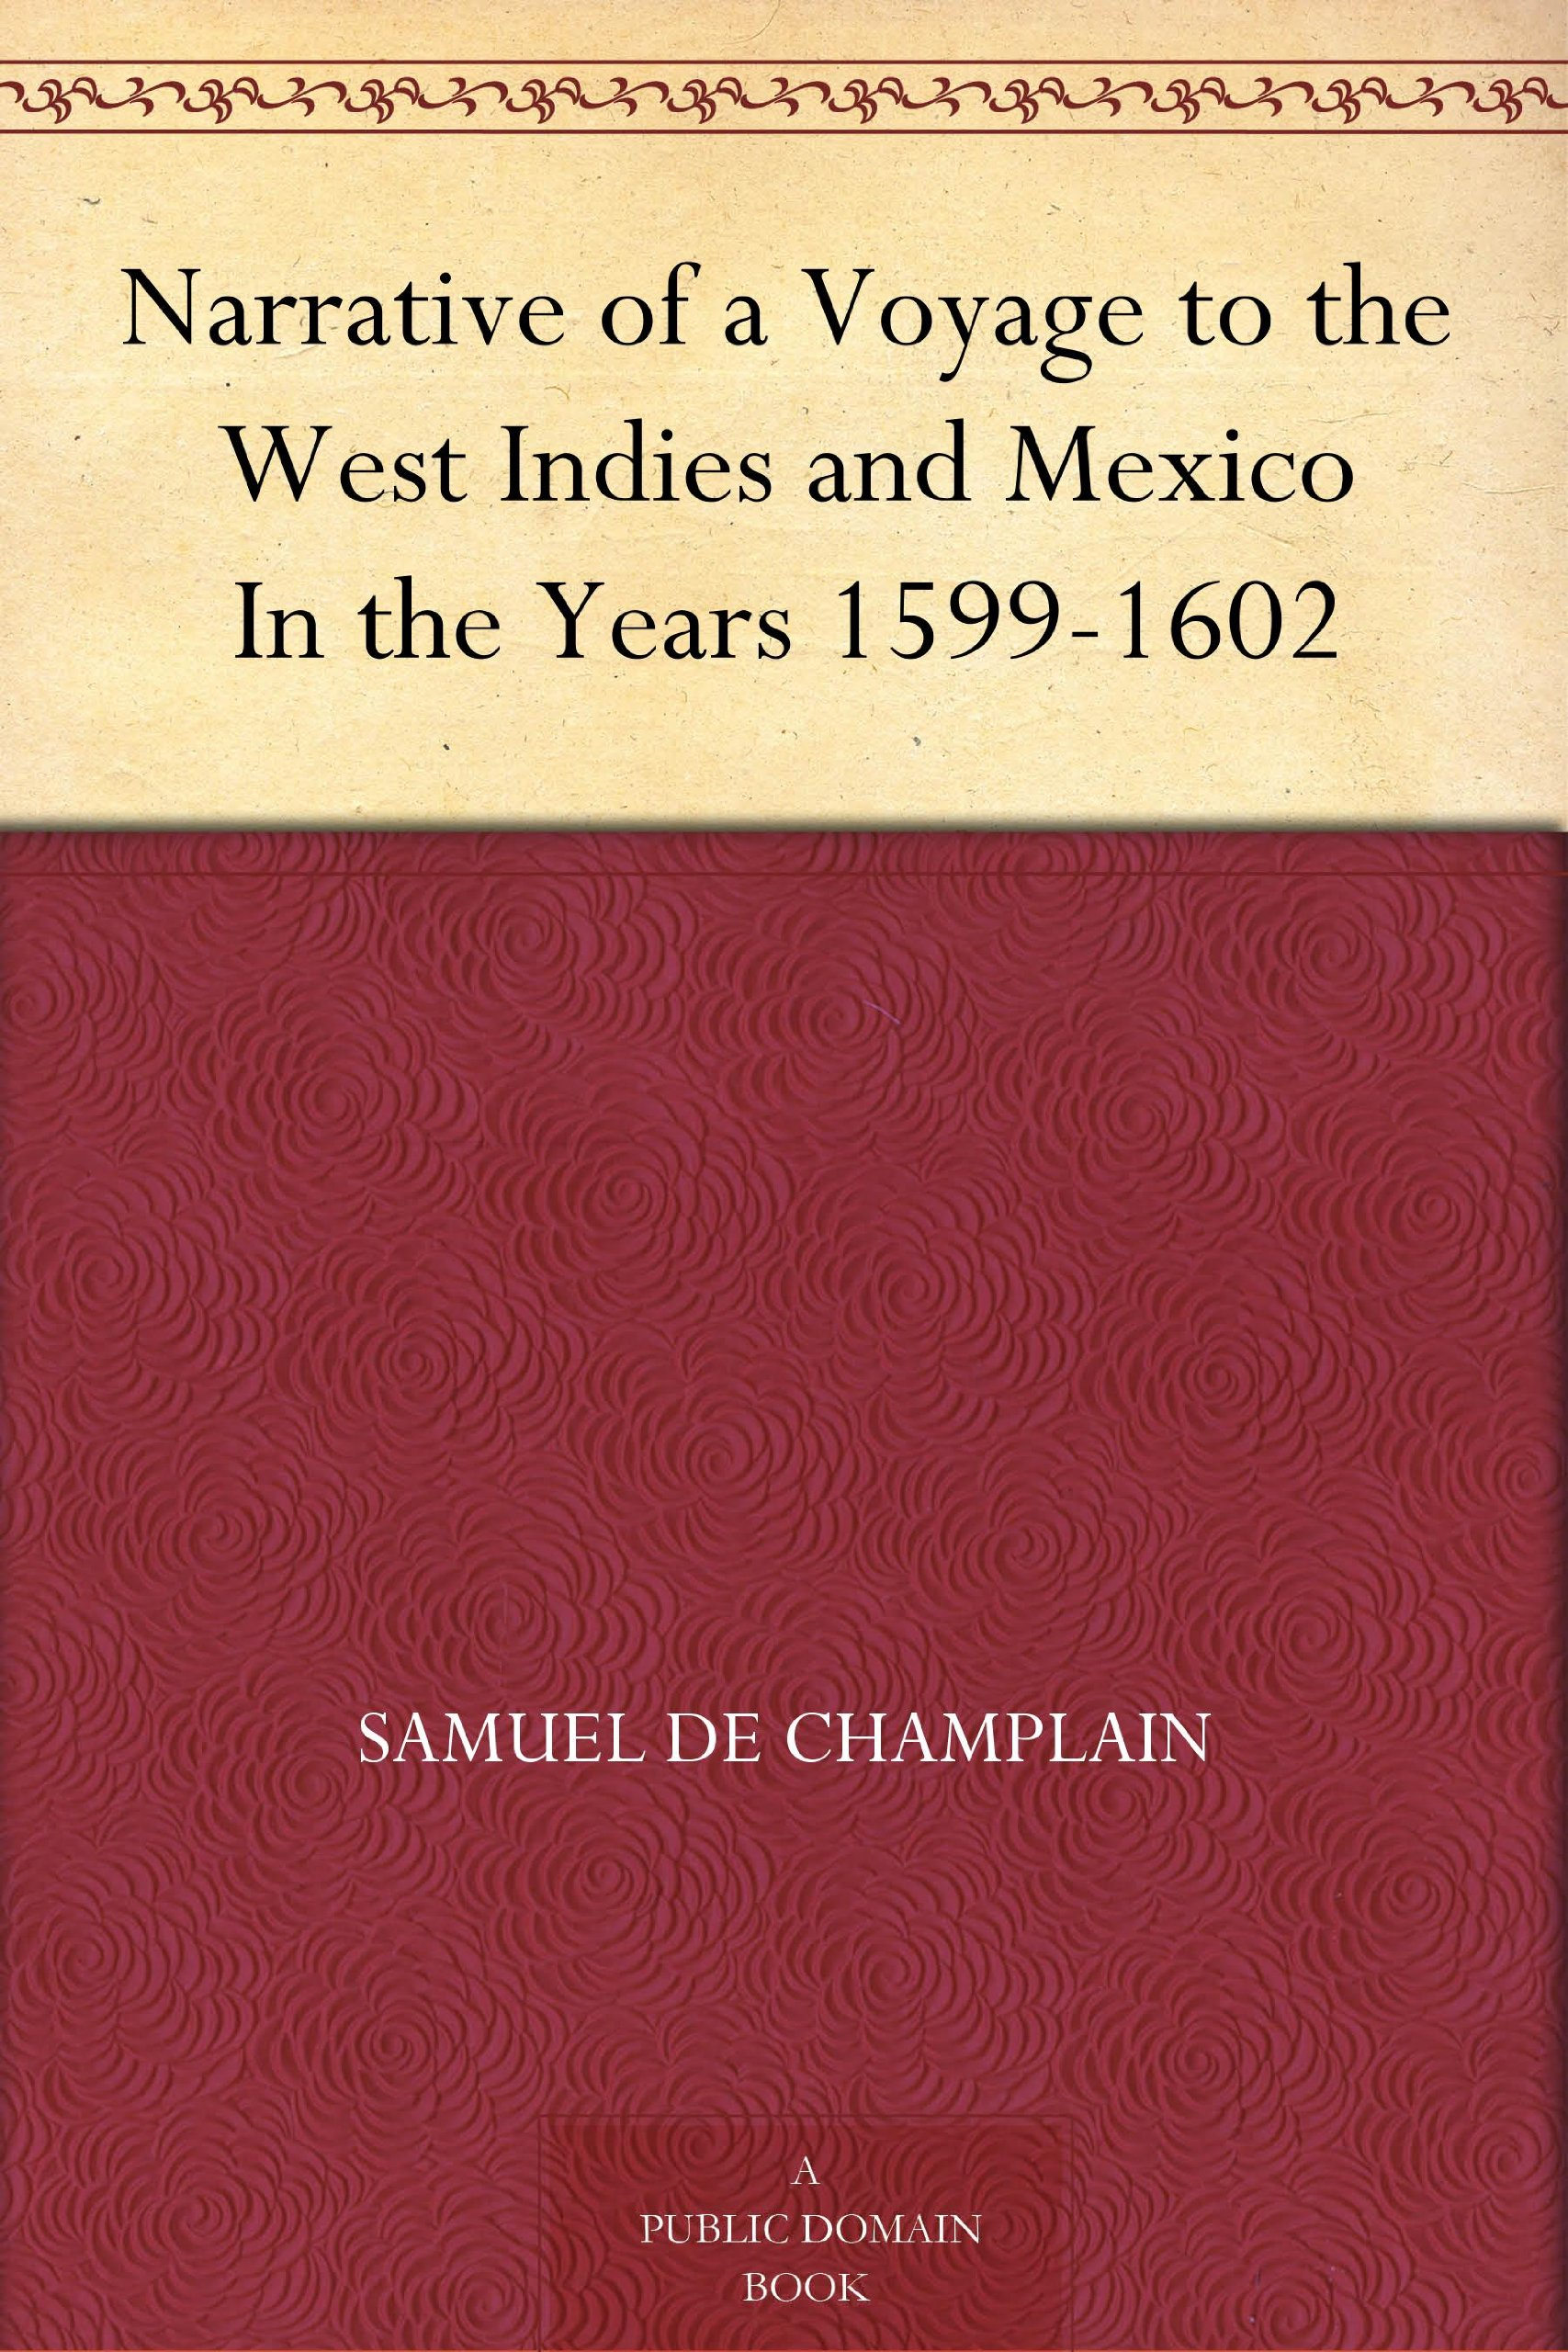 Image OfNarrative Of A Voyage To The West Indies And Mexico In The Years 1599-1602